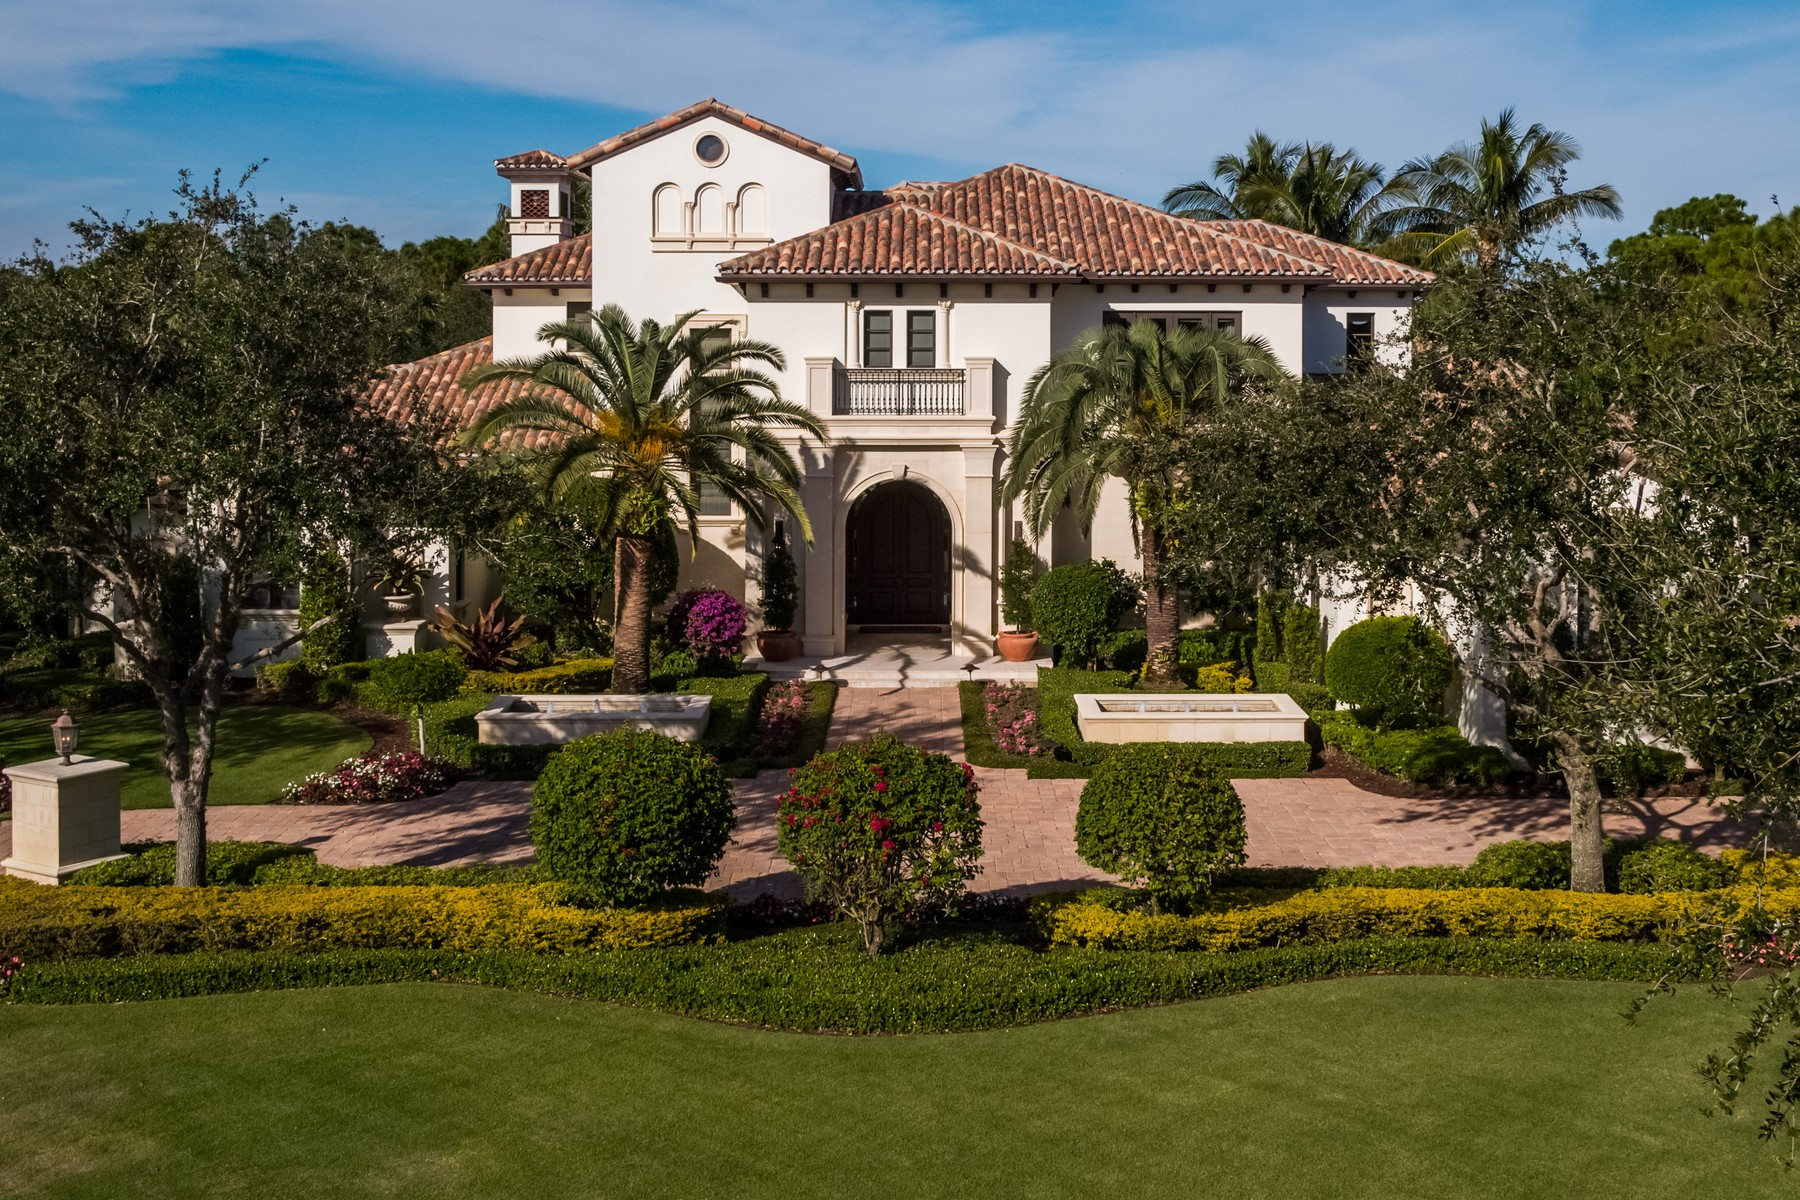 Single Family Home for Sale at 162 Bear's Club Drive at The Bear's Club The Bear's Club, Jupiter, Florida, 33477 United States